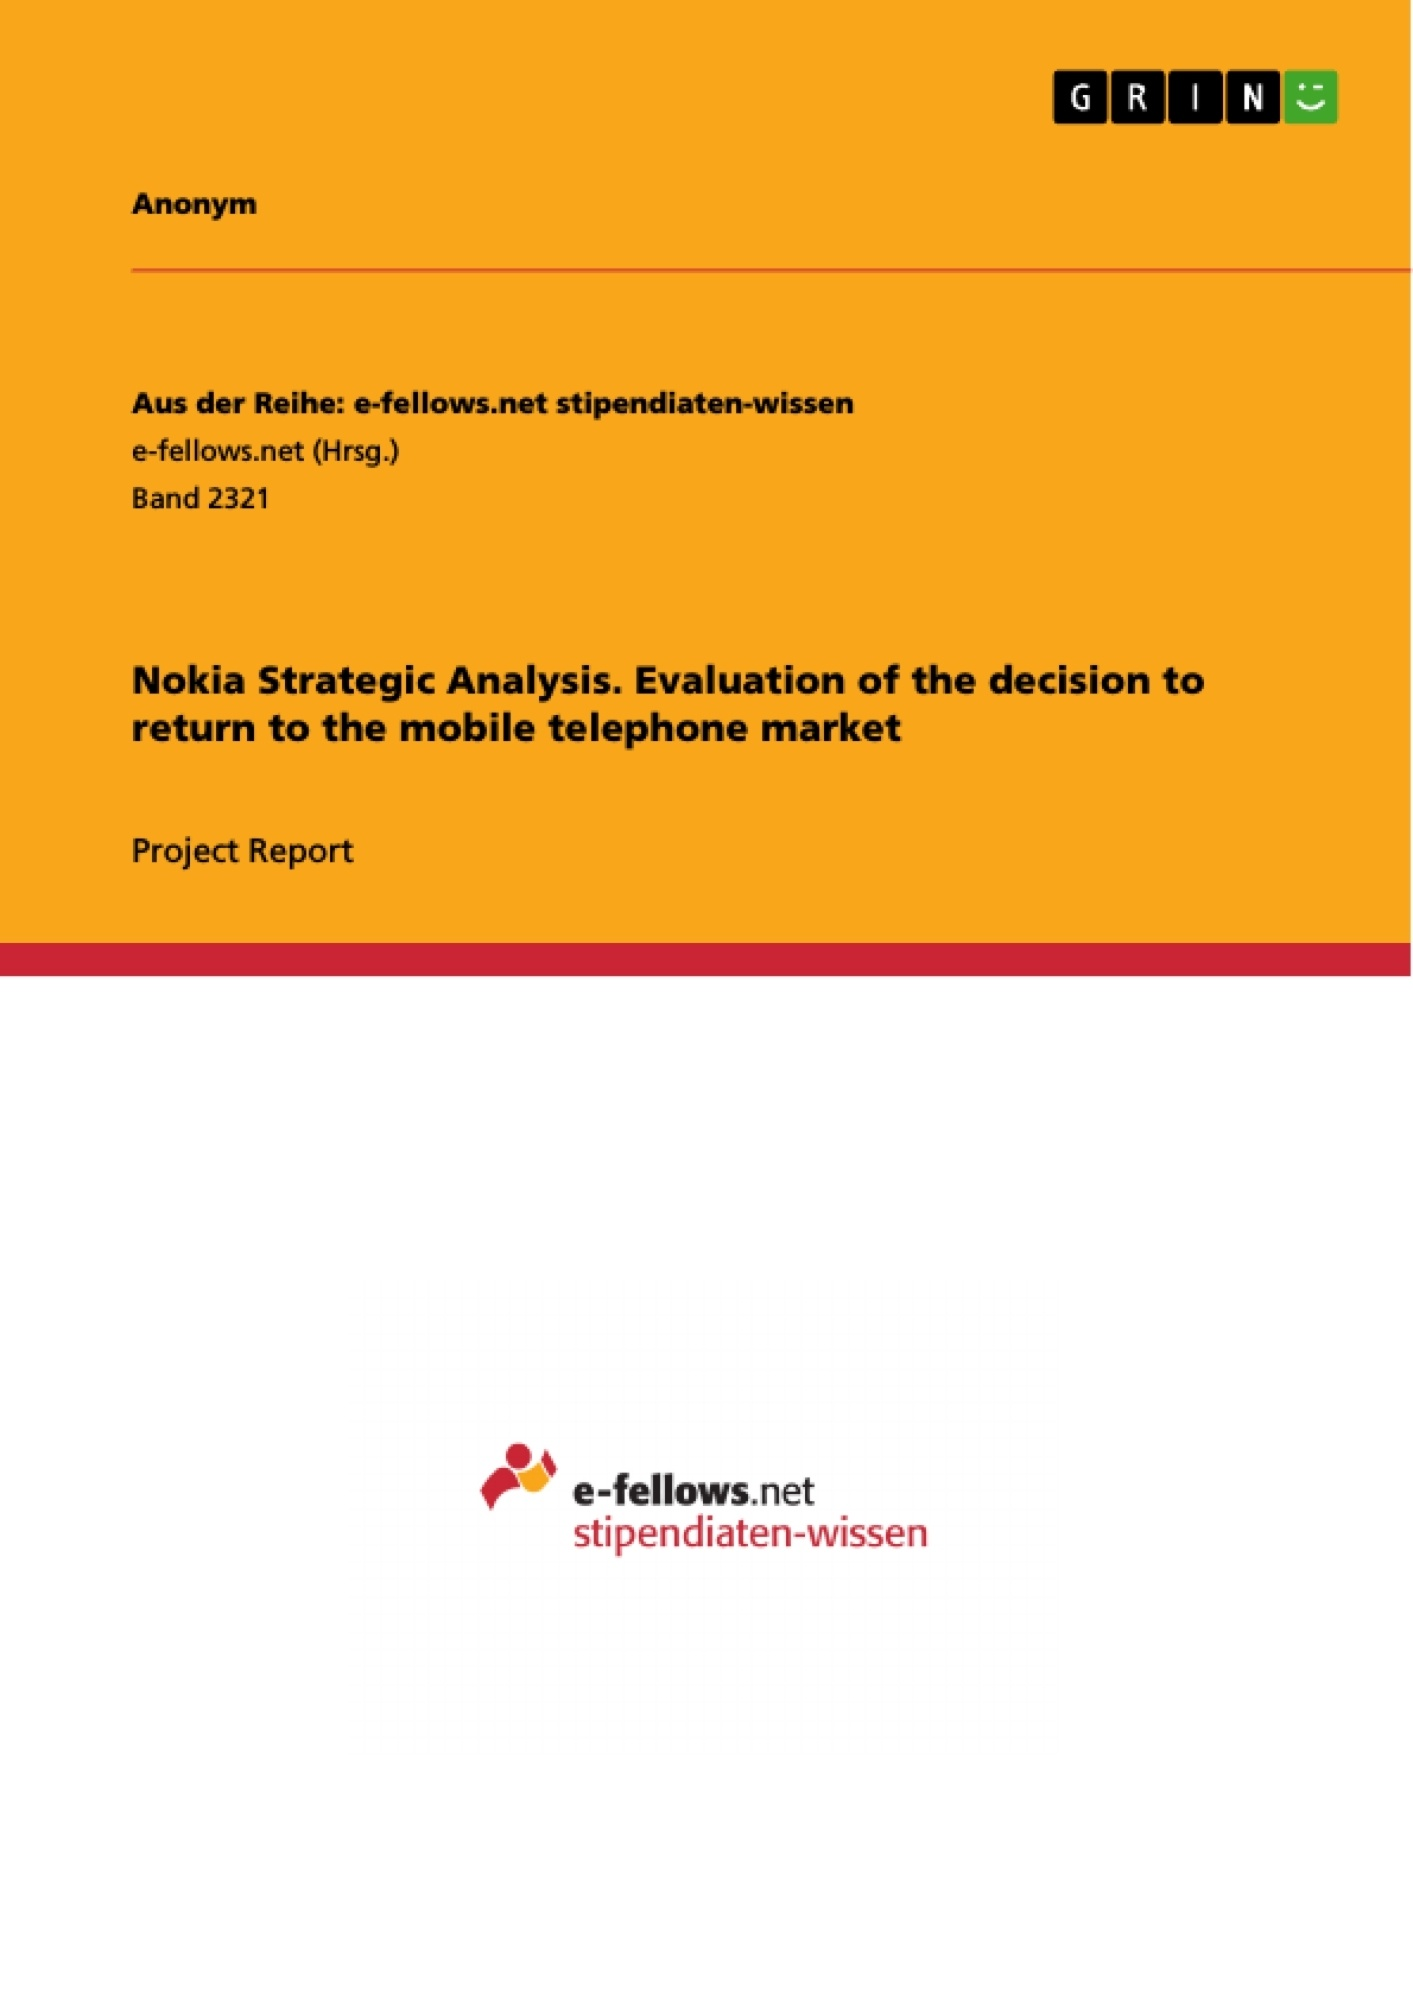 GRIN - Nokia Strategic Analysis  Evaluation of the decision to return to  the mobile telephone market